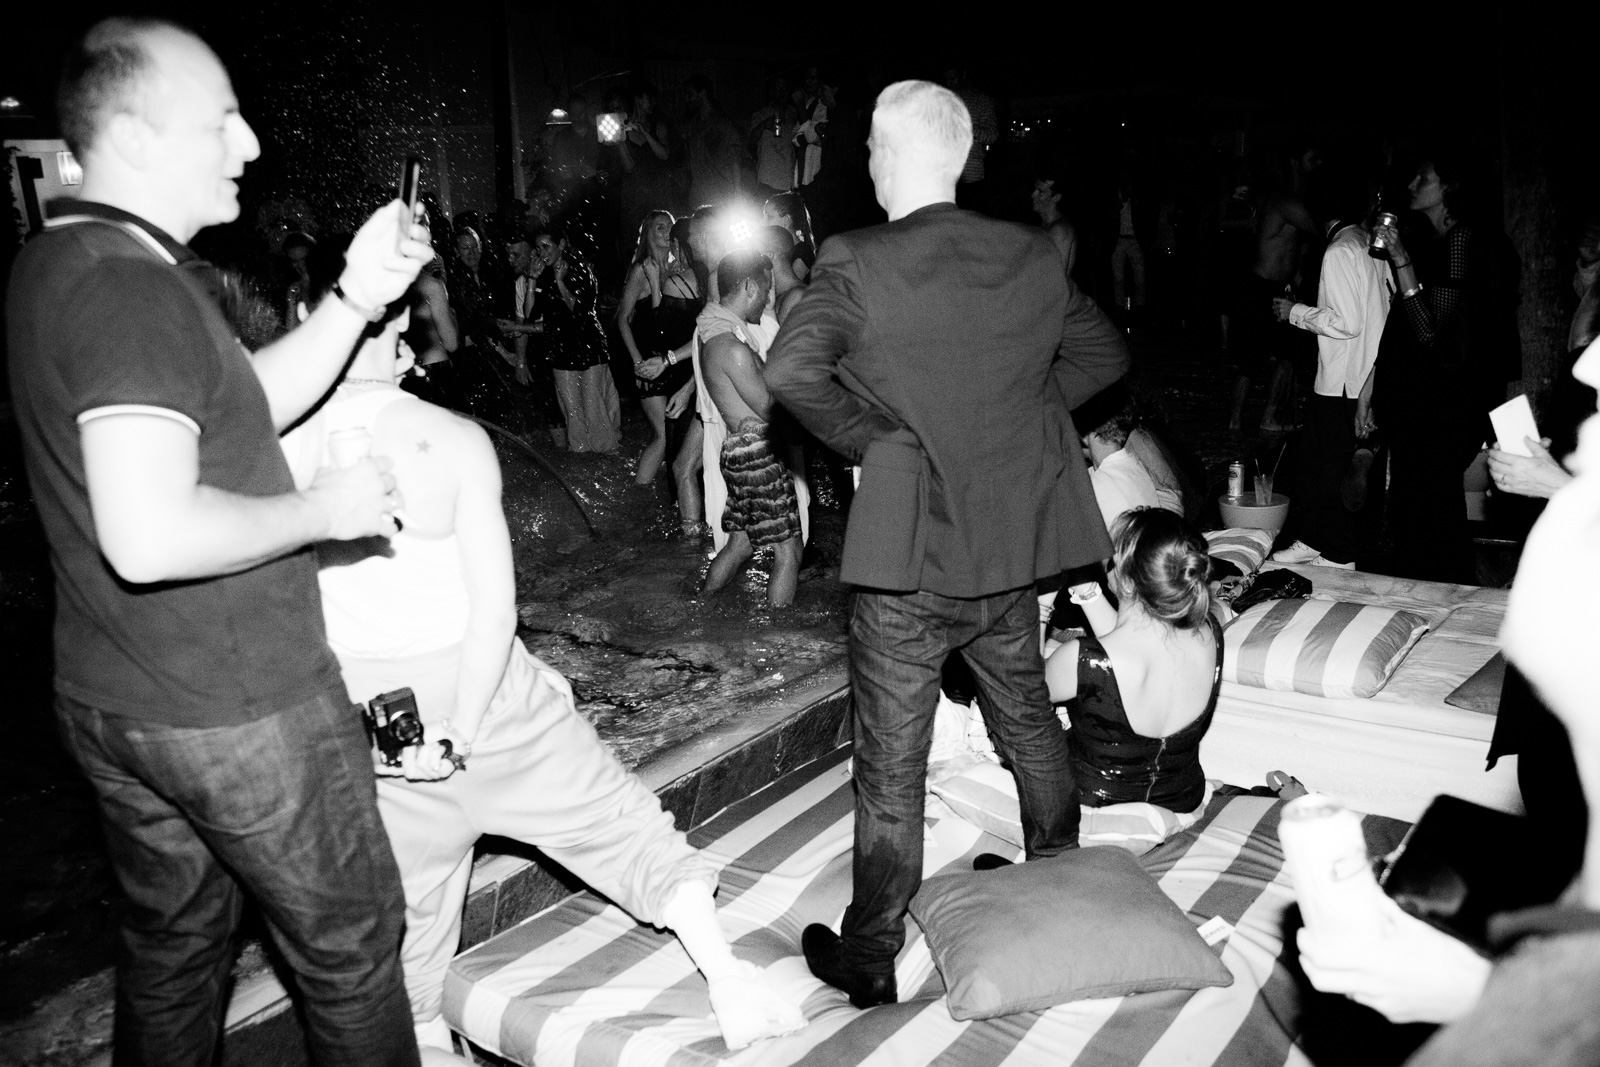 PS1 director Klaus Biesenbach at the MoMA PS1 Pool Party for 'Greater New York' Exhibition with Eckhaus Latta water performance at the Delano Beach Club during Art Basel Miami Beach 2015 on December 4, 2015 in Miami, Florida.